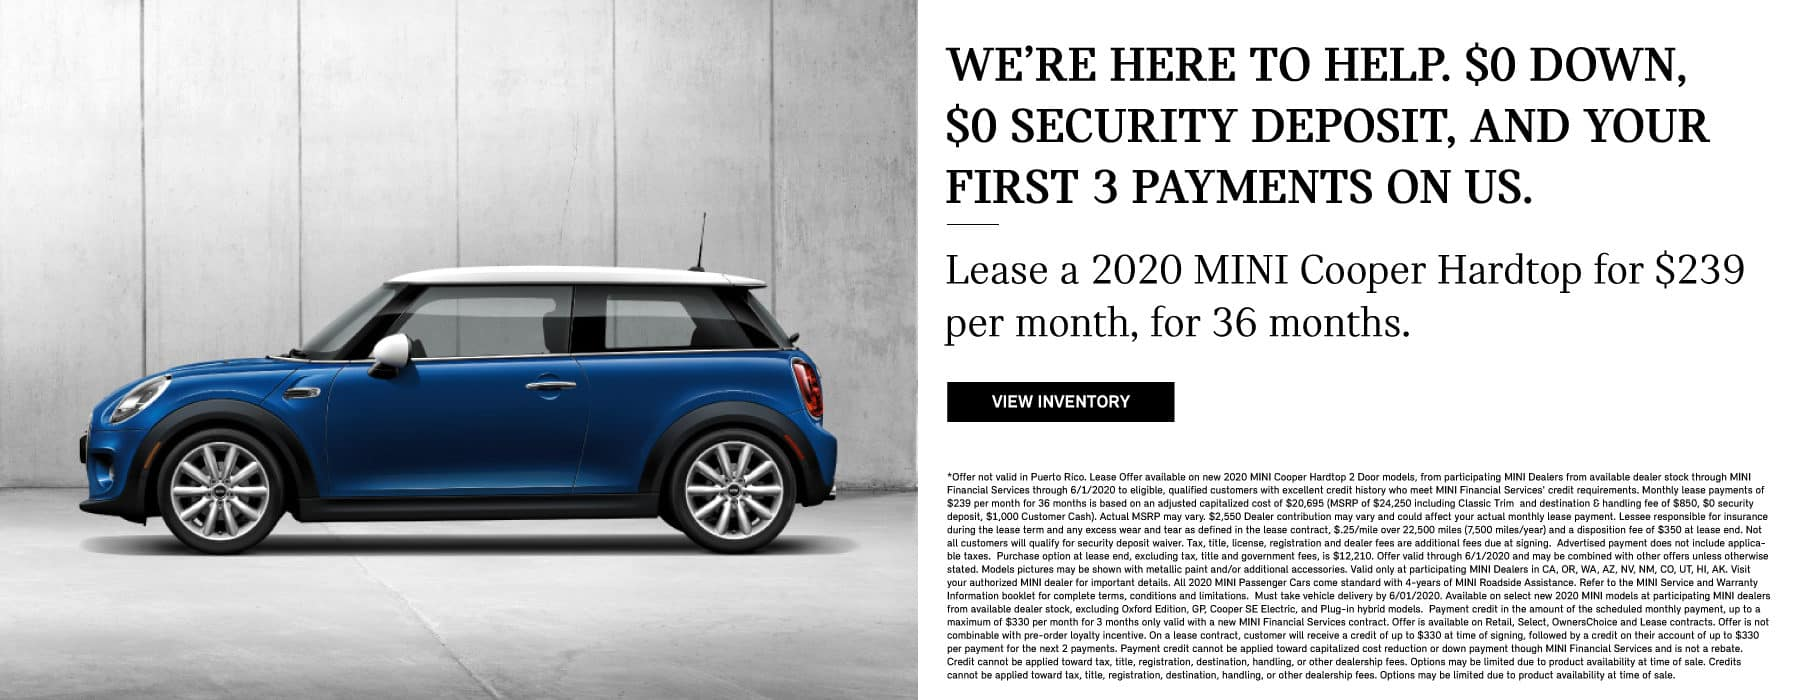 We are here to help $0 down, $0 Security deposit, and your first 3 payments on us. Lease a 2020 MINI Cooper Hardtop for $239 per month, for 36 months. View Inventory